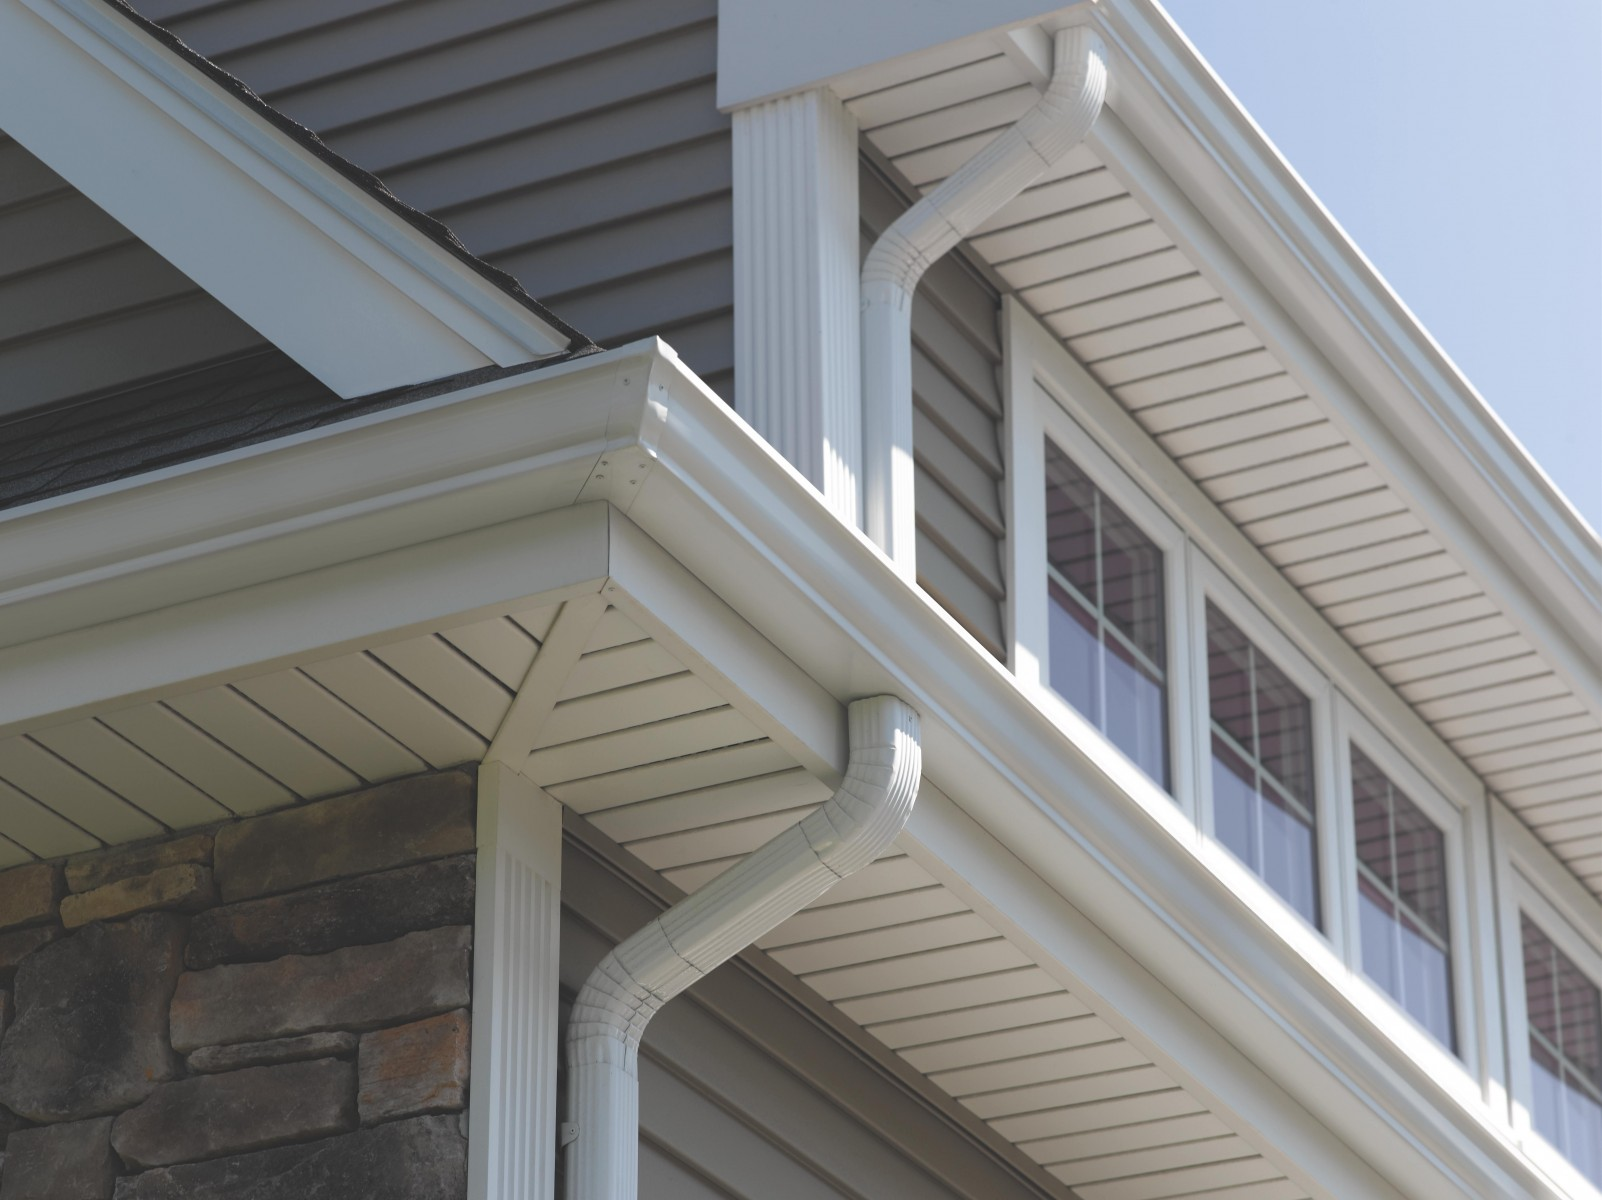 new certainteed perimeter solid and hidden vent soffit combines beauty with better airflow